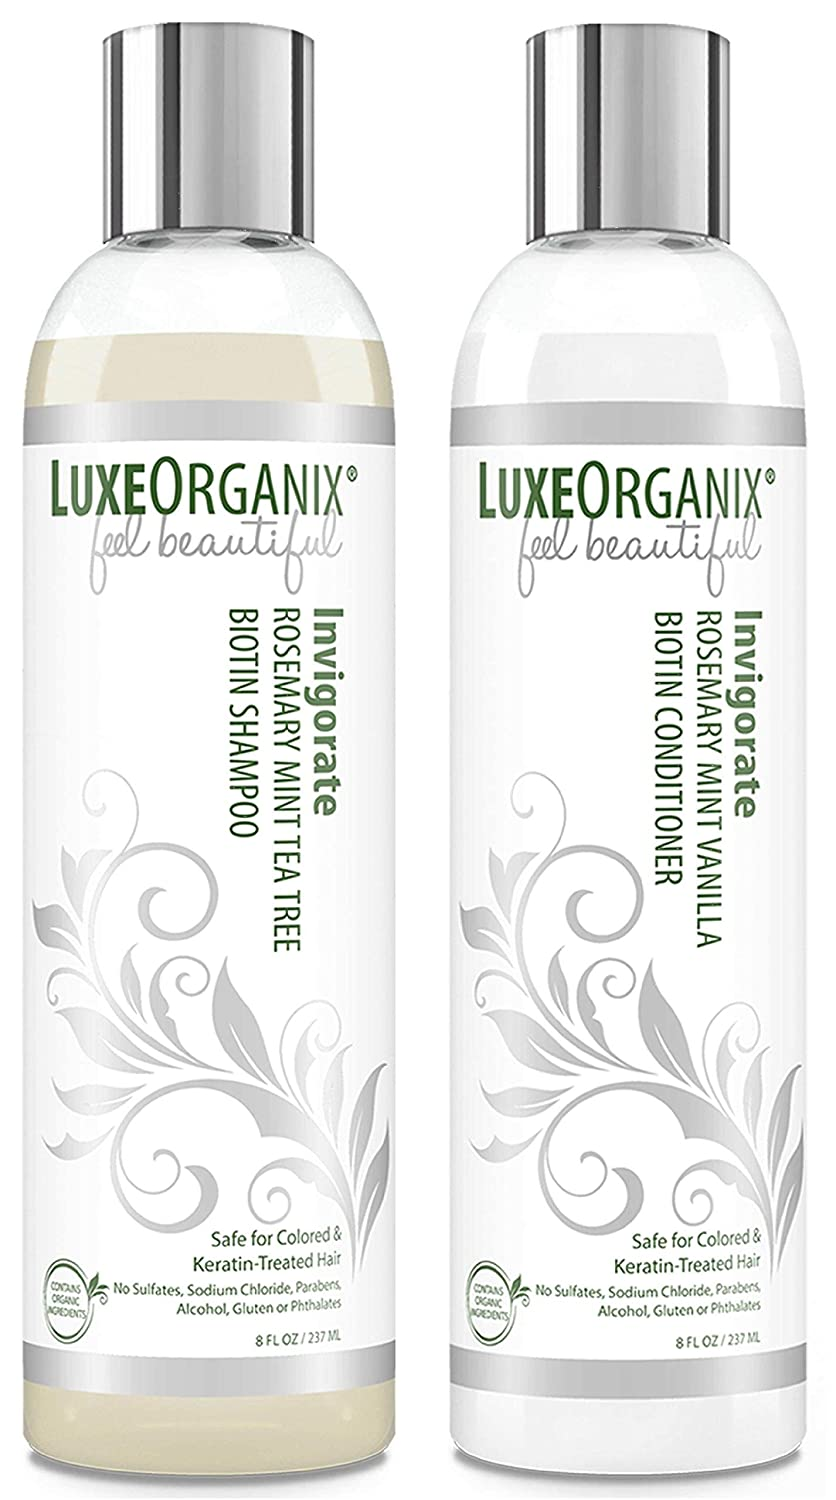 Biotin Organic Shampoo and Conditioner: Safe for Color Treated and Keratin Hair Treatments. Natural Mint, Tea Tree and Rosemary Oils for Healthier Growing Hair and Scalp. For All Hair Types. (USA)